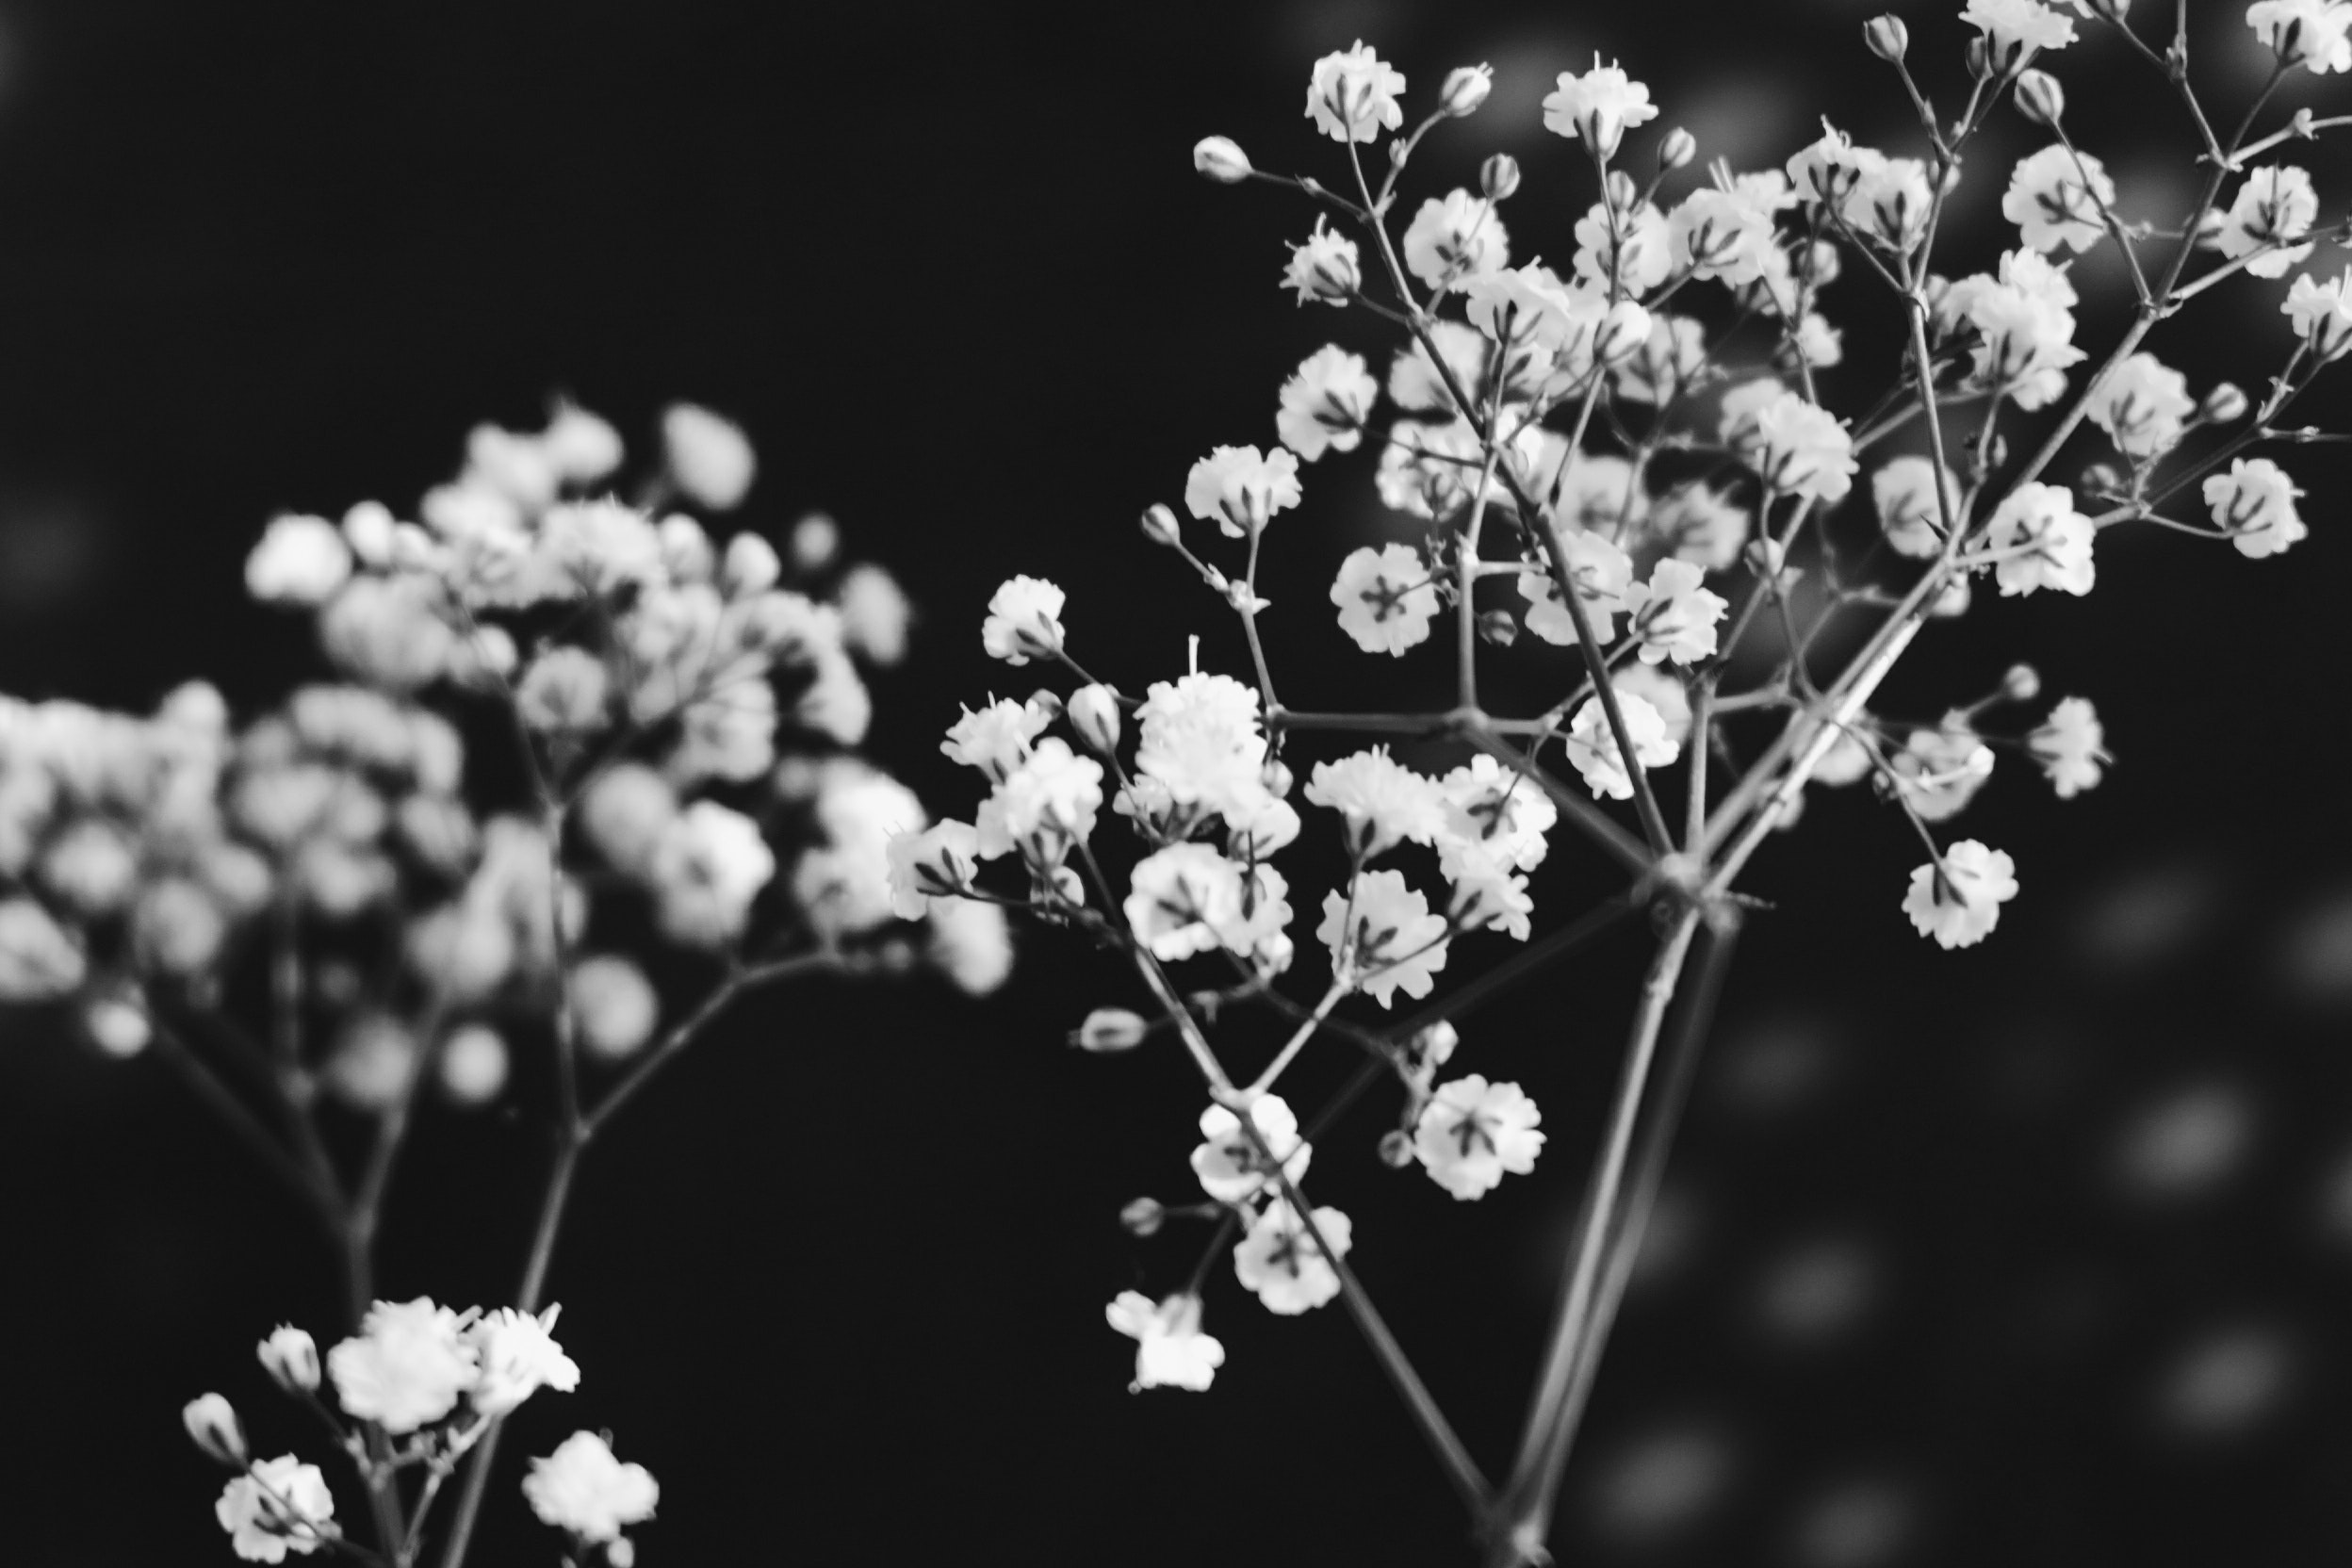 Similar photos grayscale photography of flowers